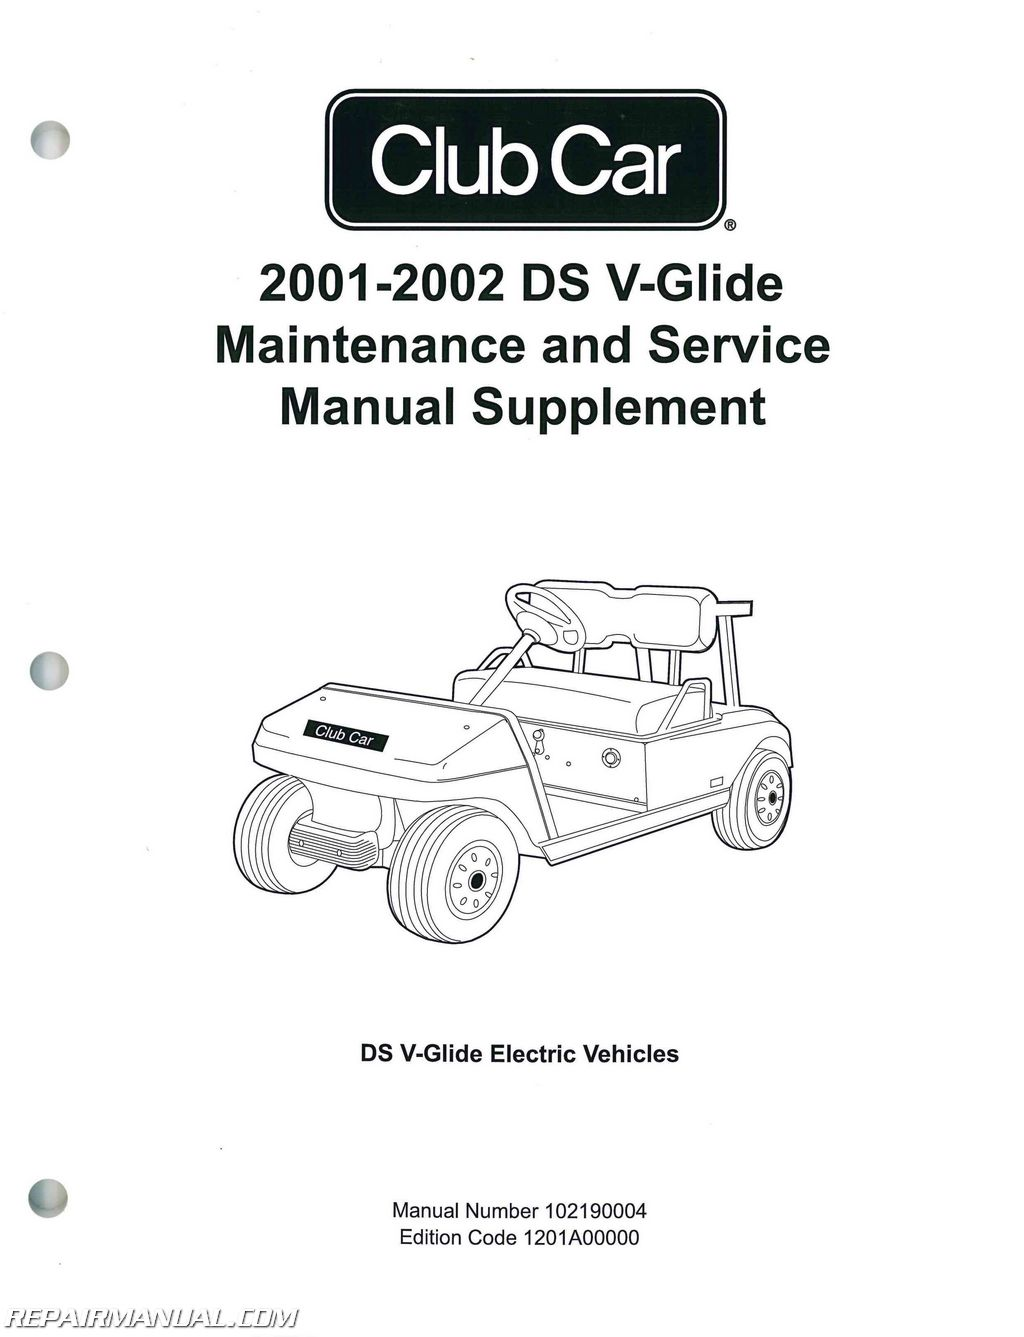 2001-2002 Club Car DS V-Glide Golf Car Maintenance And Service Manual  Supplement